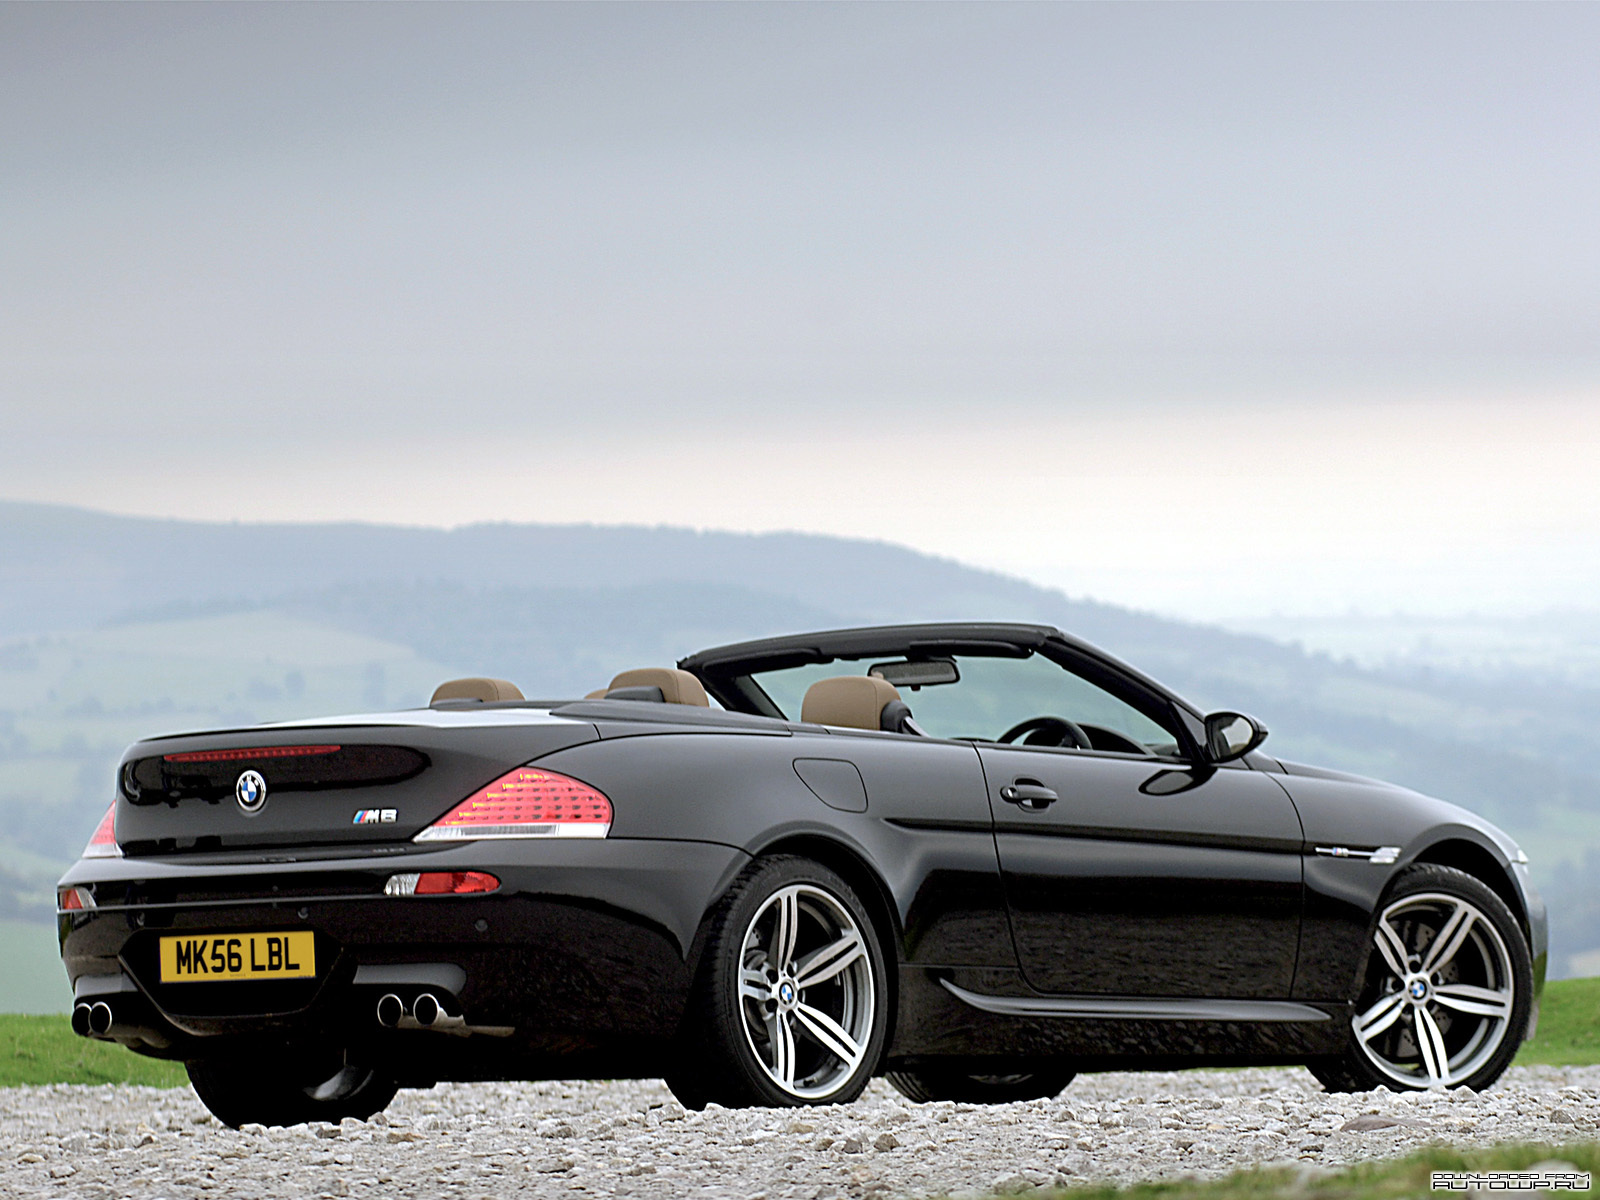 Bmw M6 E64 Convertible Photos Photogallery With 46 Pics